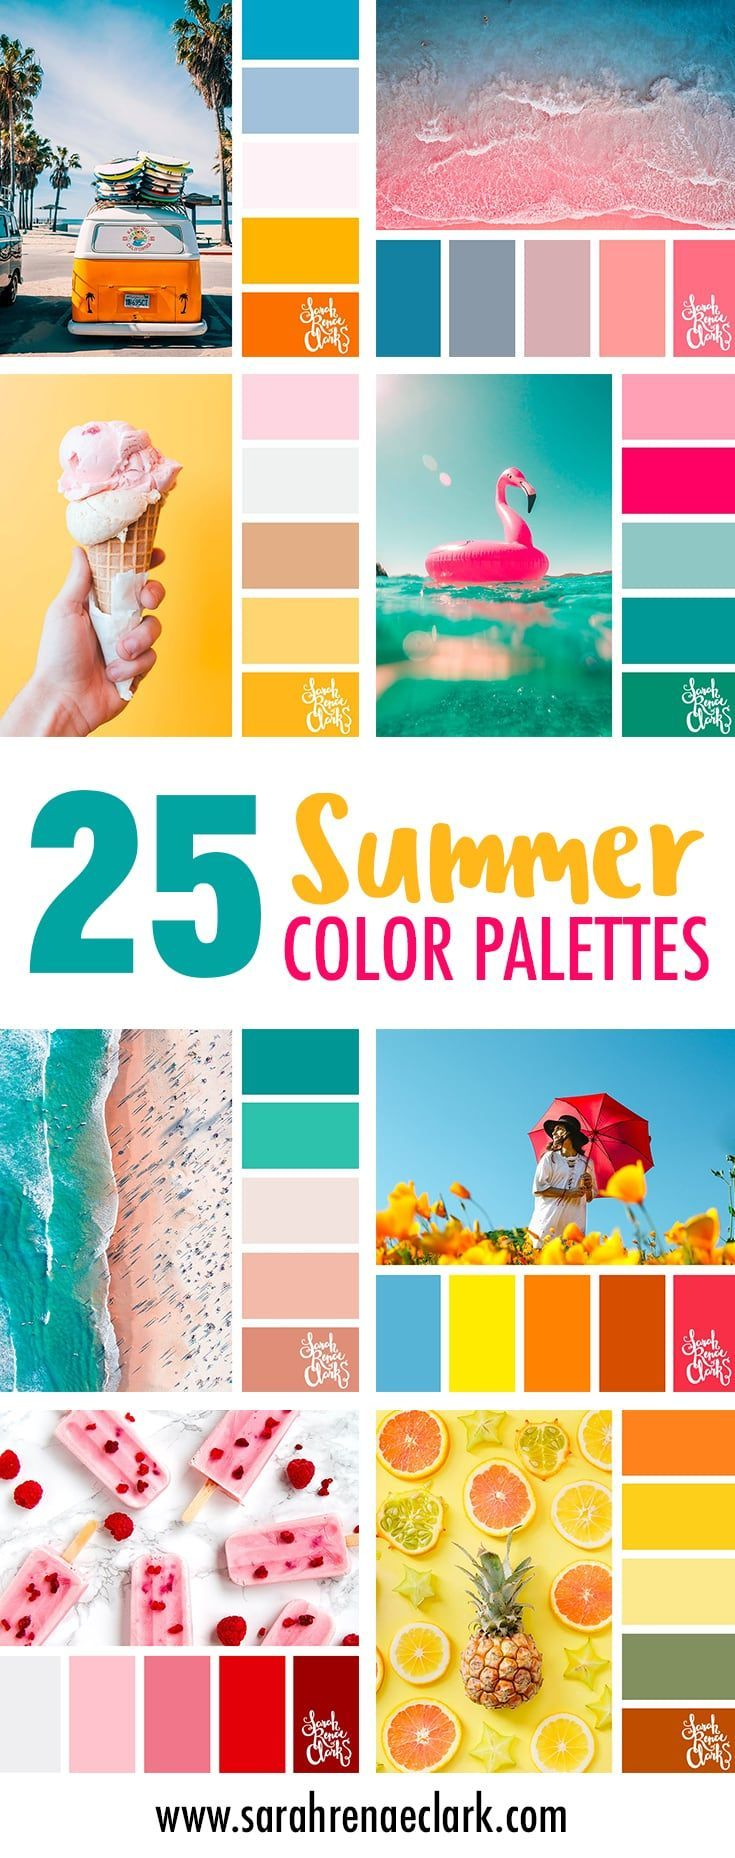 25 Summer Color Palettes | Inspiring color schemes by Sarah Renae Clark